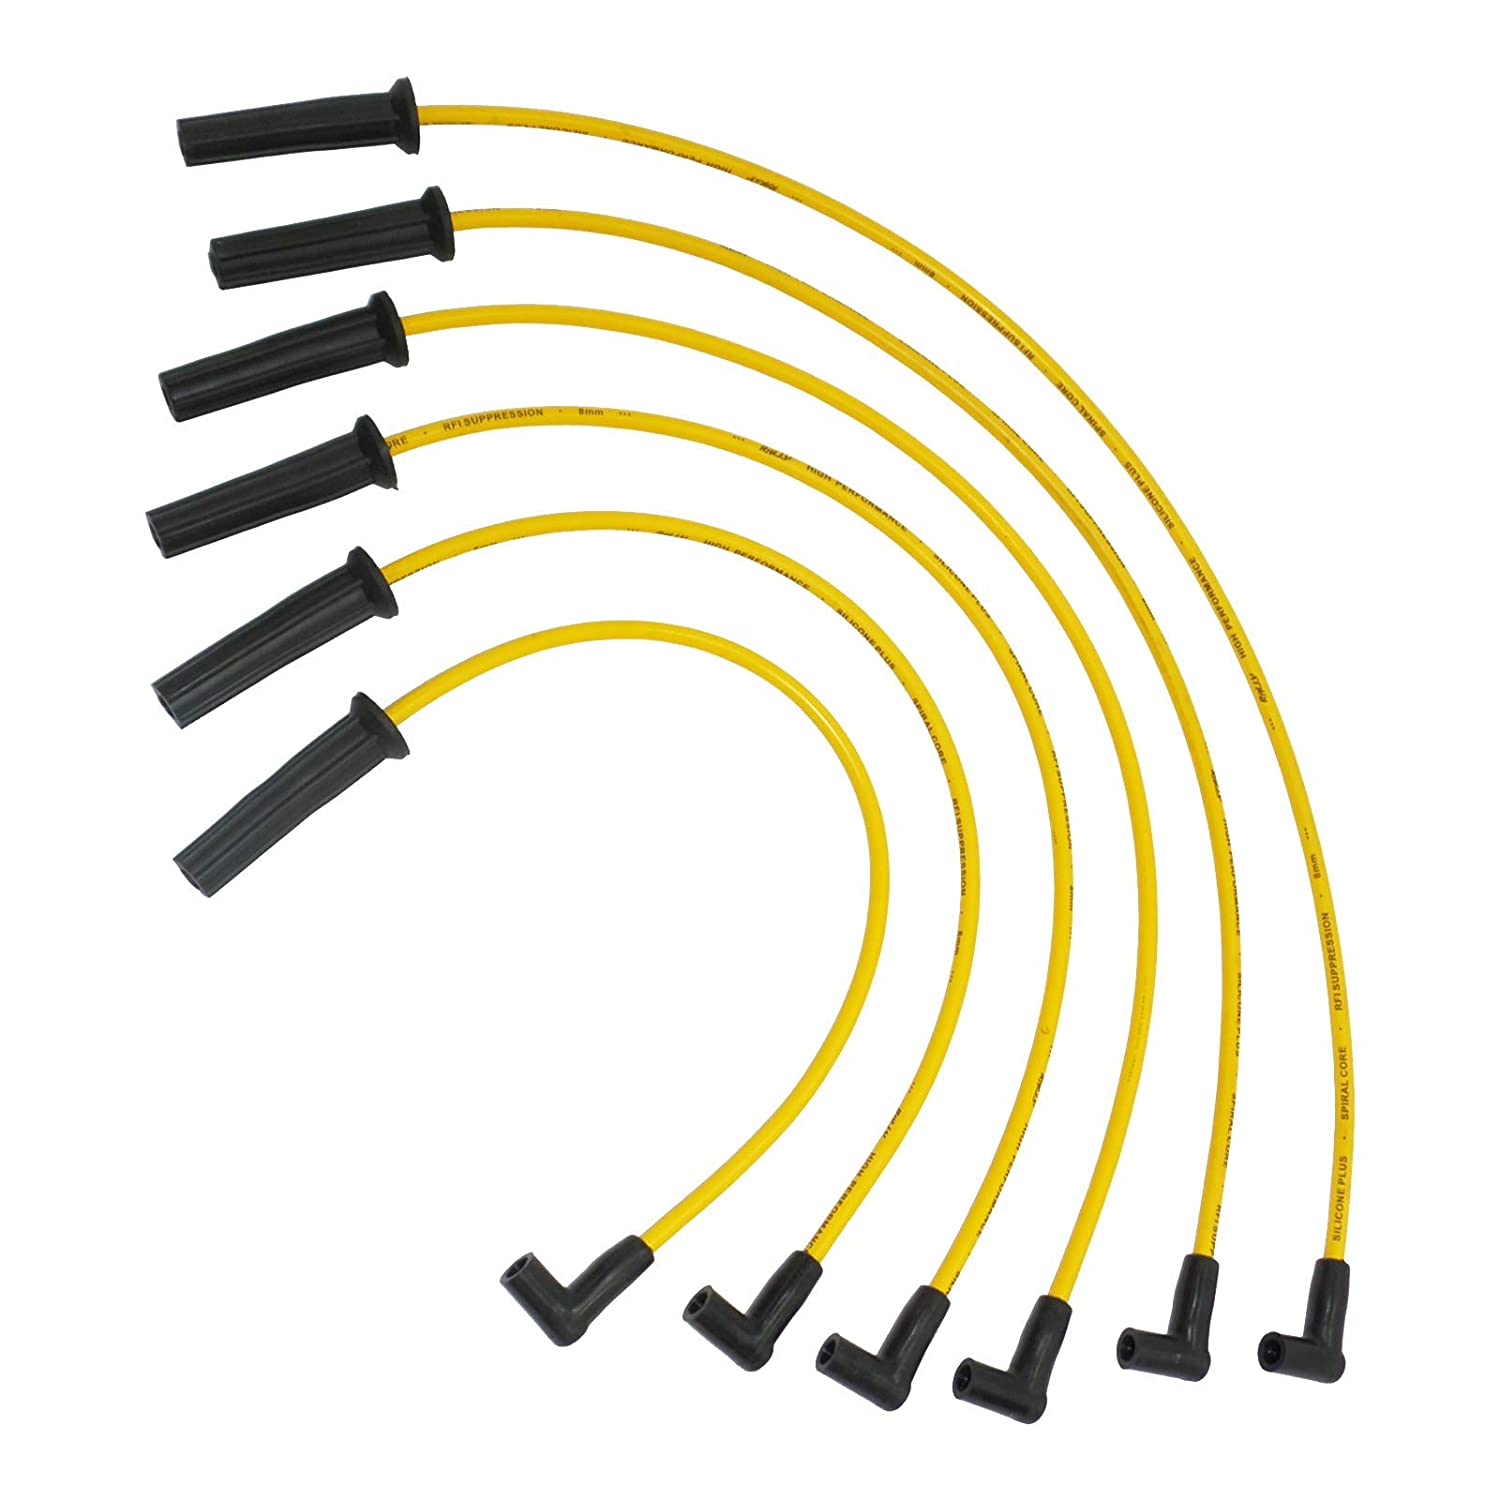 468 NEW SPARK PLUG WIRE SET 7667 FOR ENGINE 231 3.8L